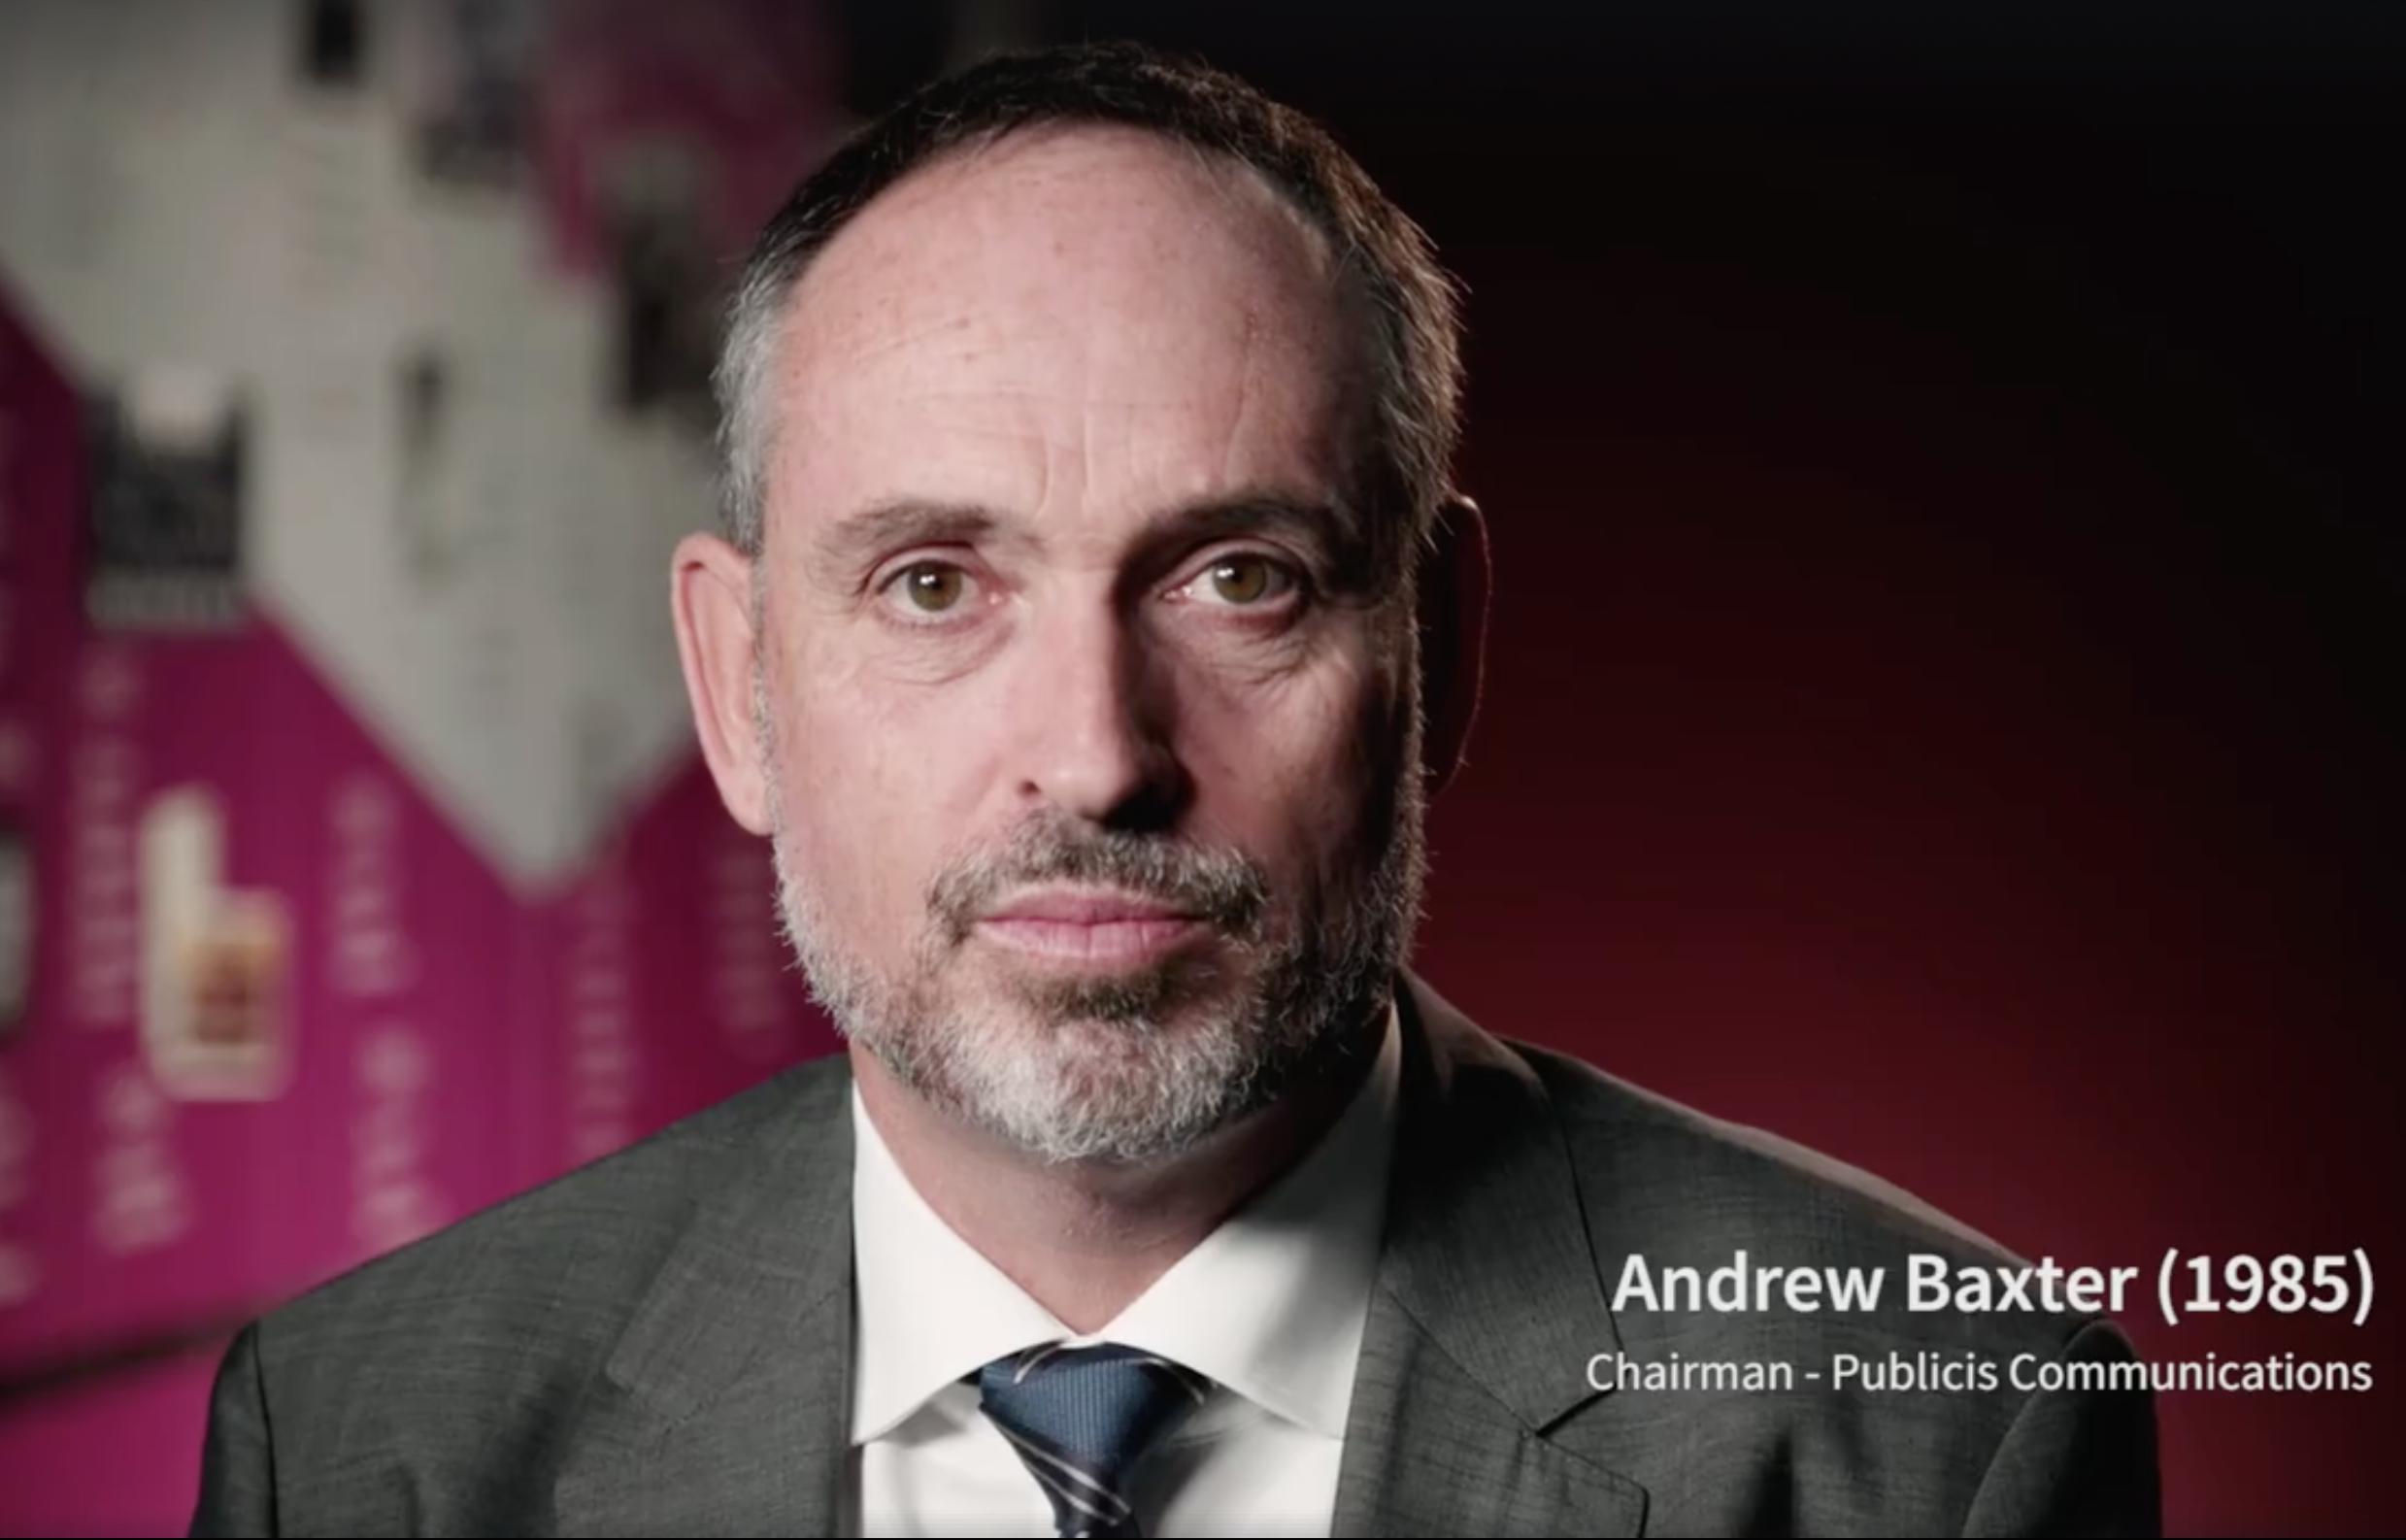 Andrew is interviewed as part of the Old Haileyburians' Association Staying Connected Series - a 20 part series featuring the diversity of Haileybury's well known alumni.